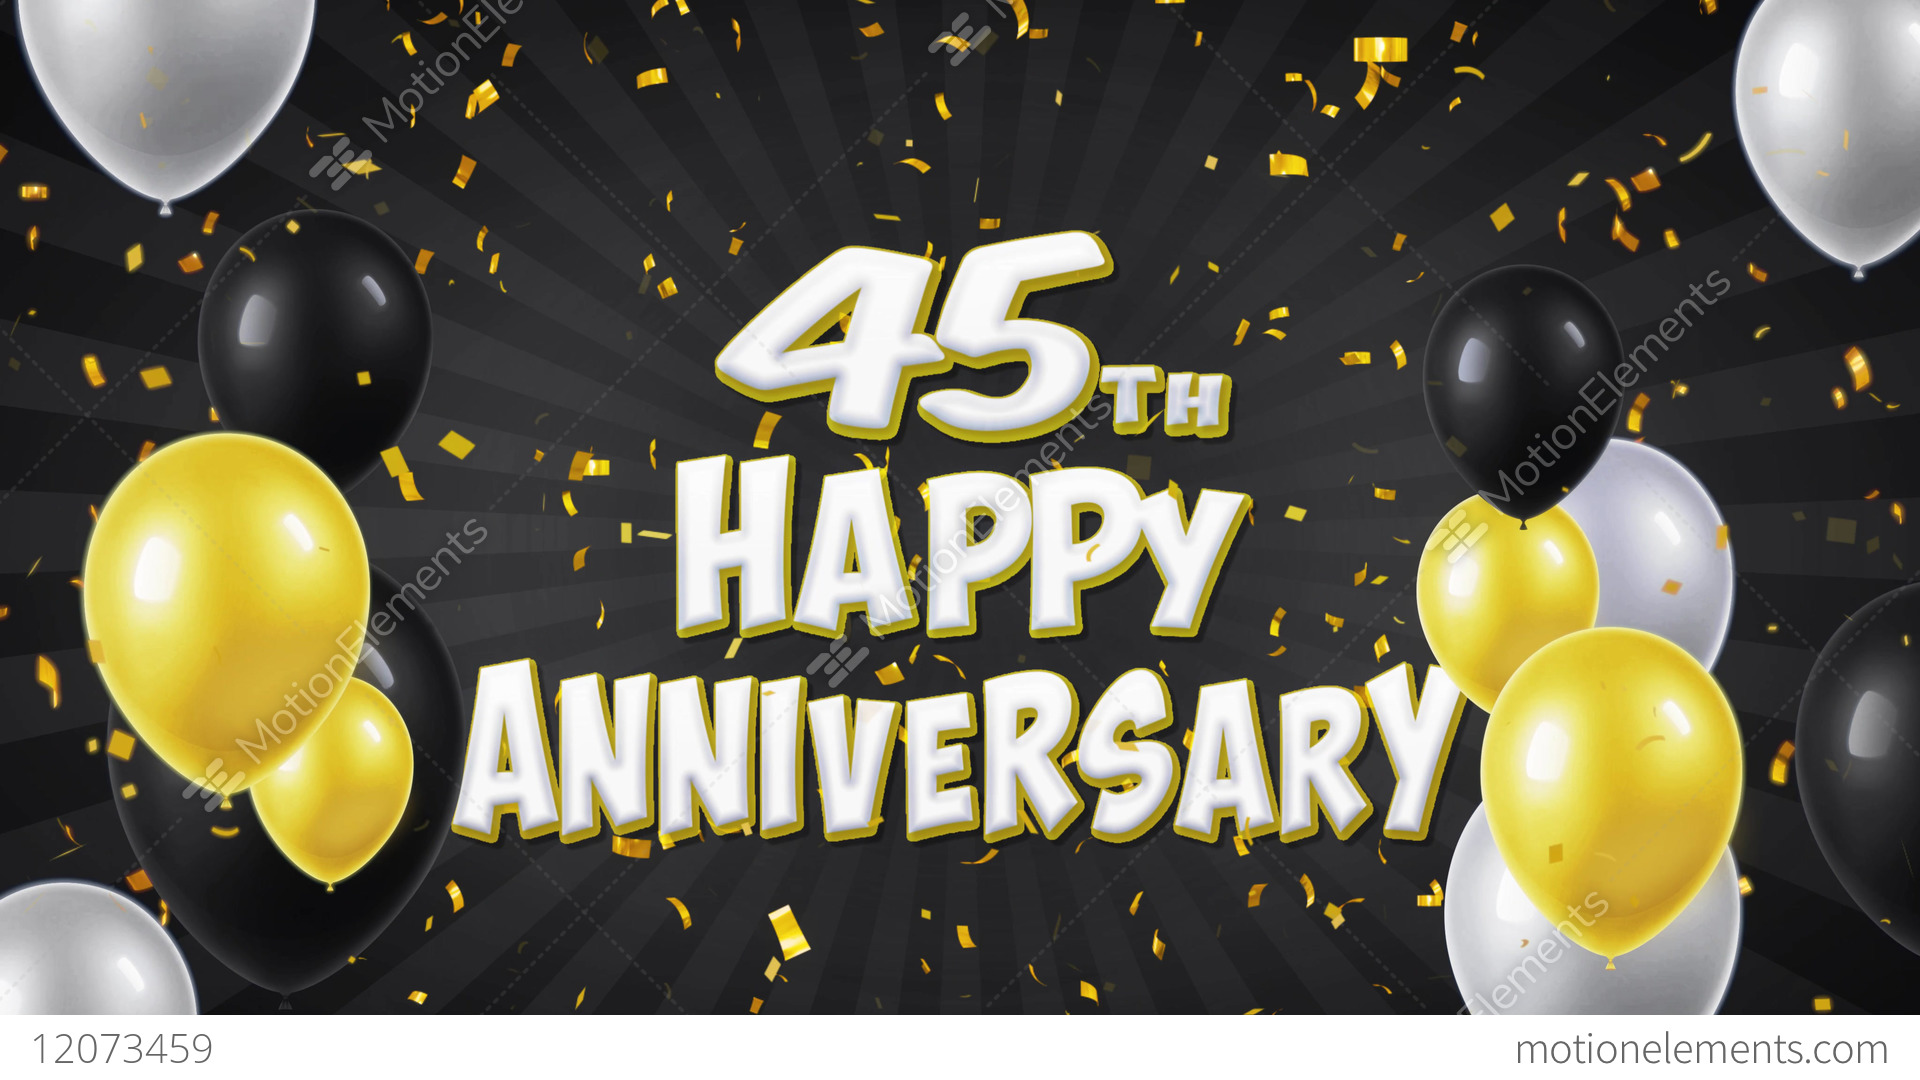 45th Happy Anniversary Black Greeting And Wishes With Stock Video Footage